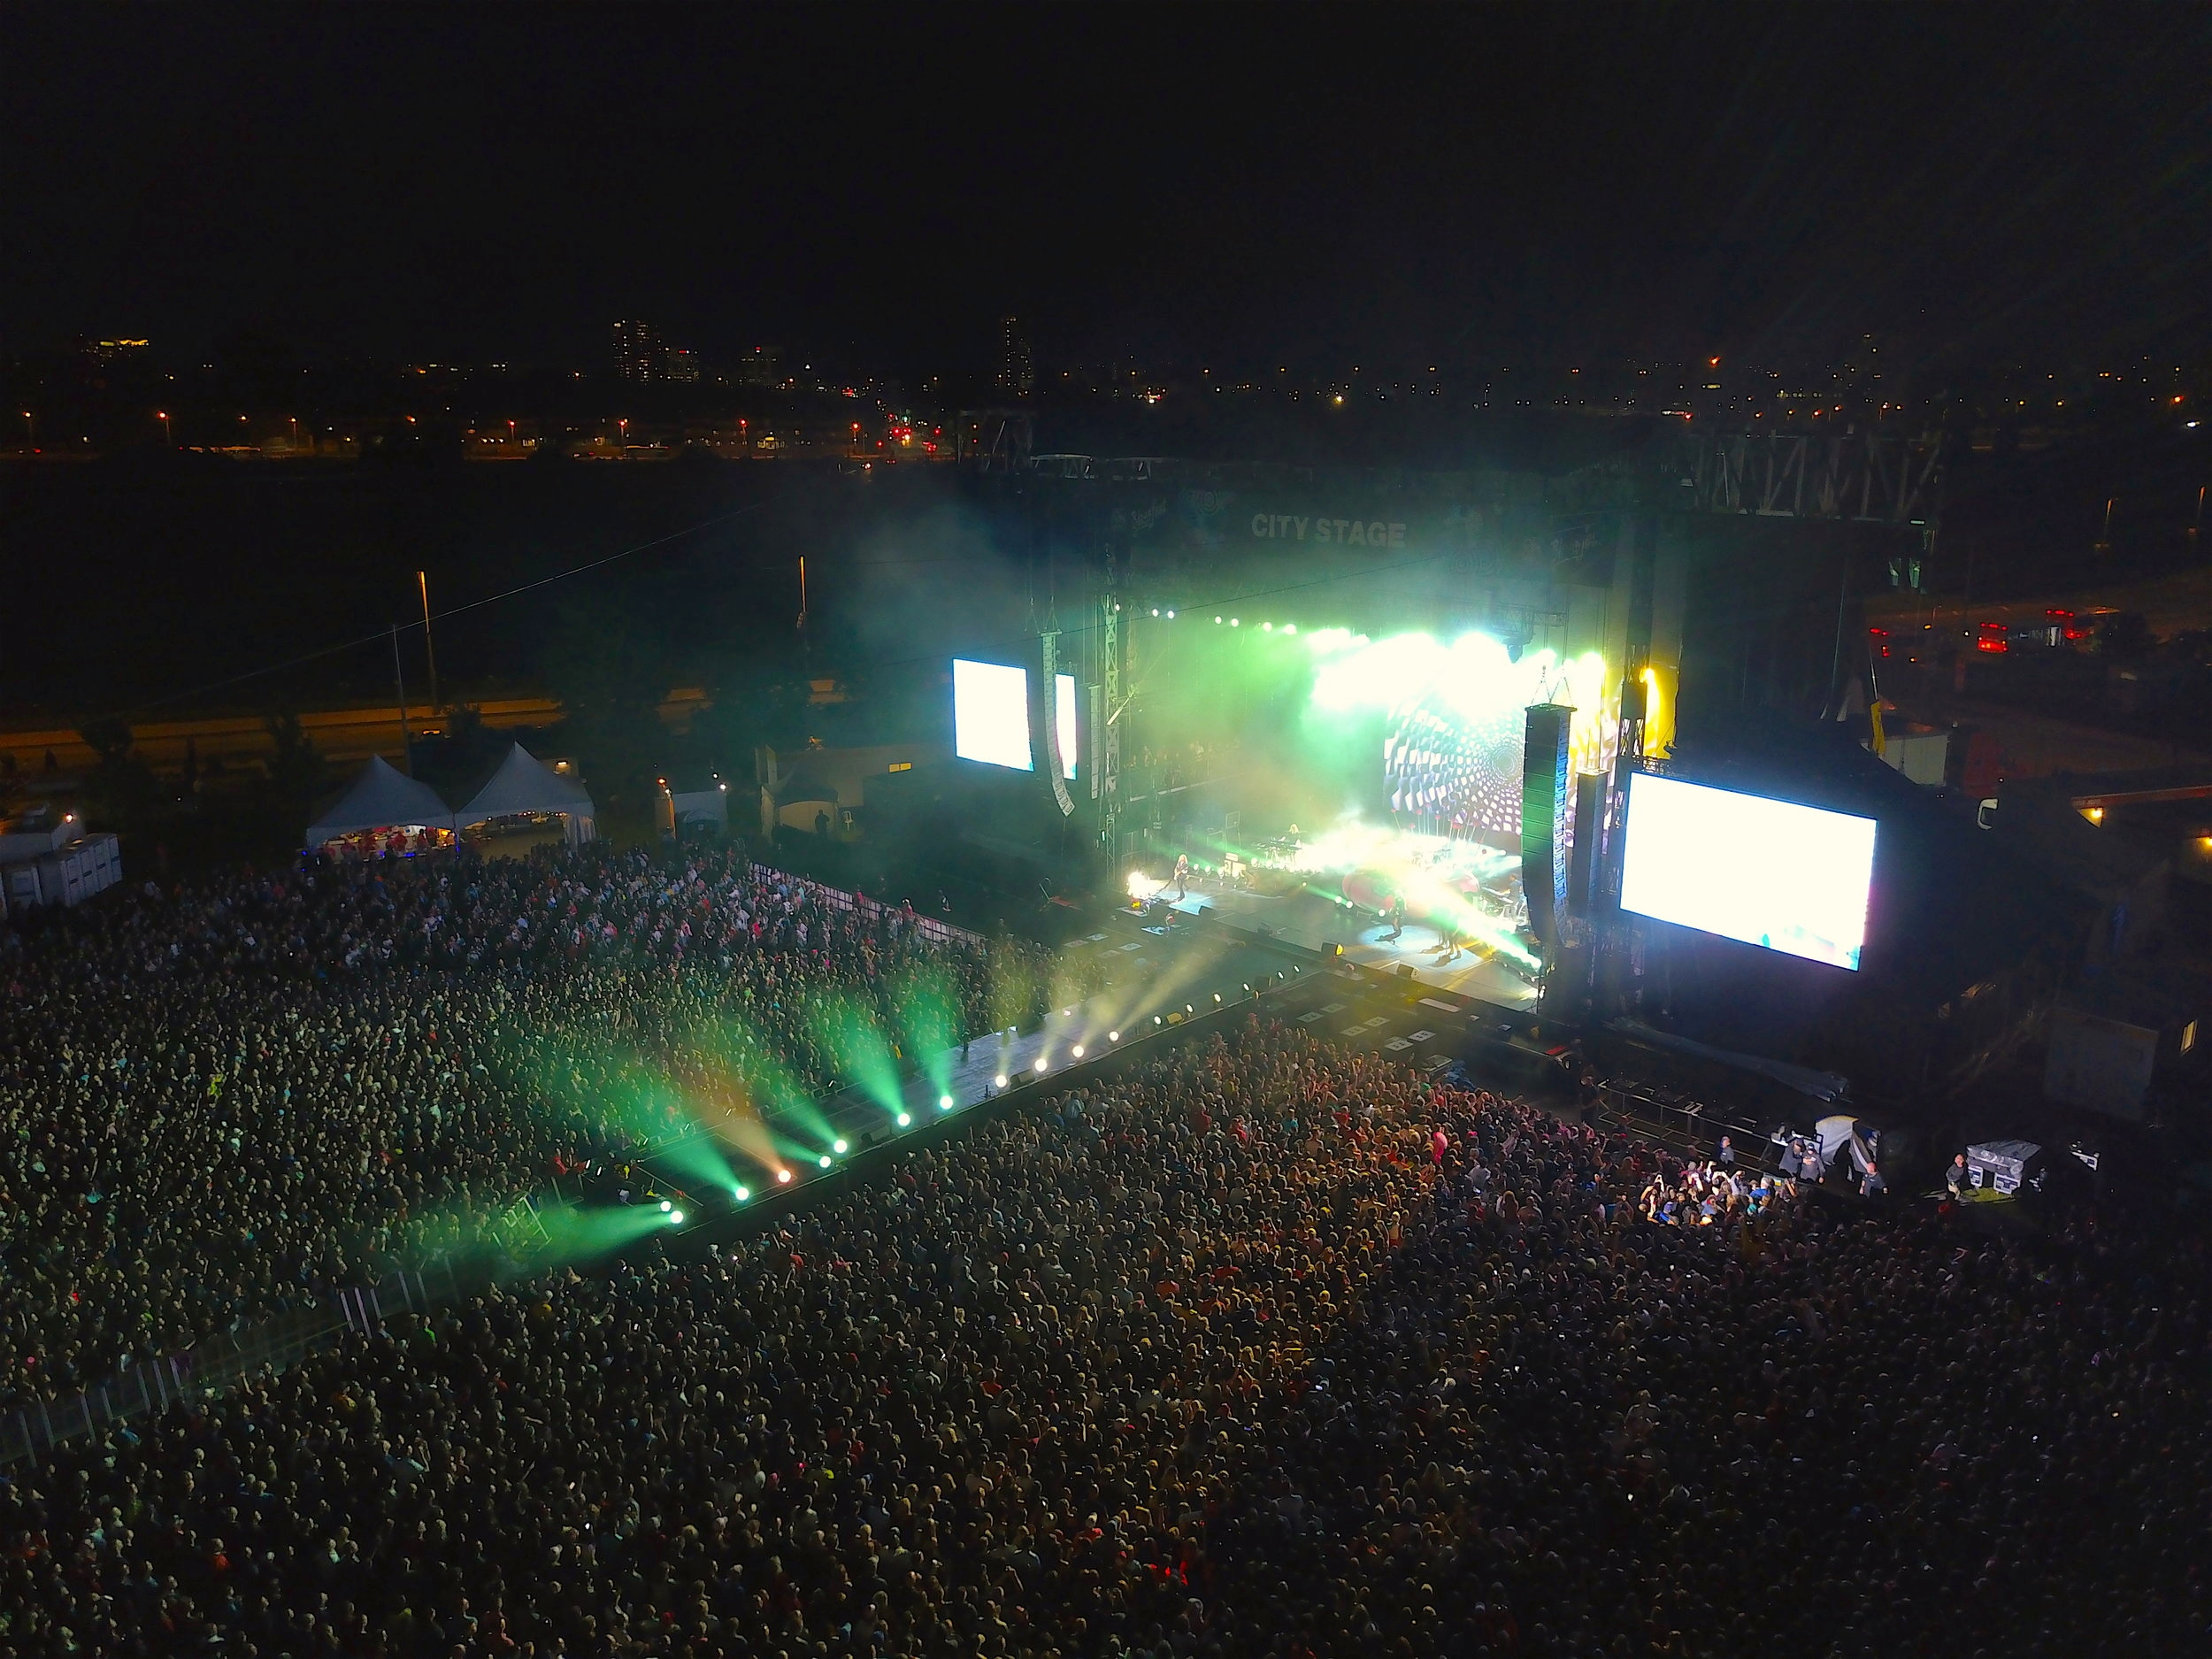 Marketing - A major music festival joined forces with us to further promote their venue in an innovative way. We were able to showcase the entire site, massive crowds and all-day fun, with professional post-production. The client received a complete turn-key promotional package with rapid turn-around time.